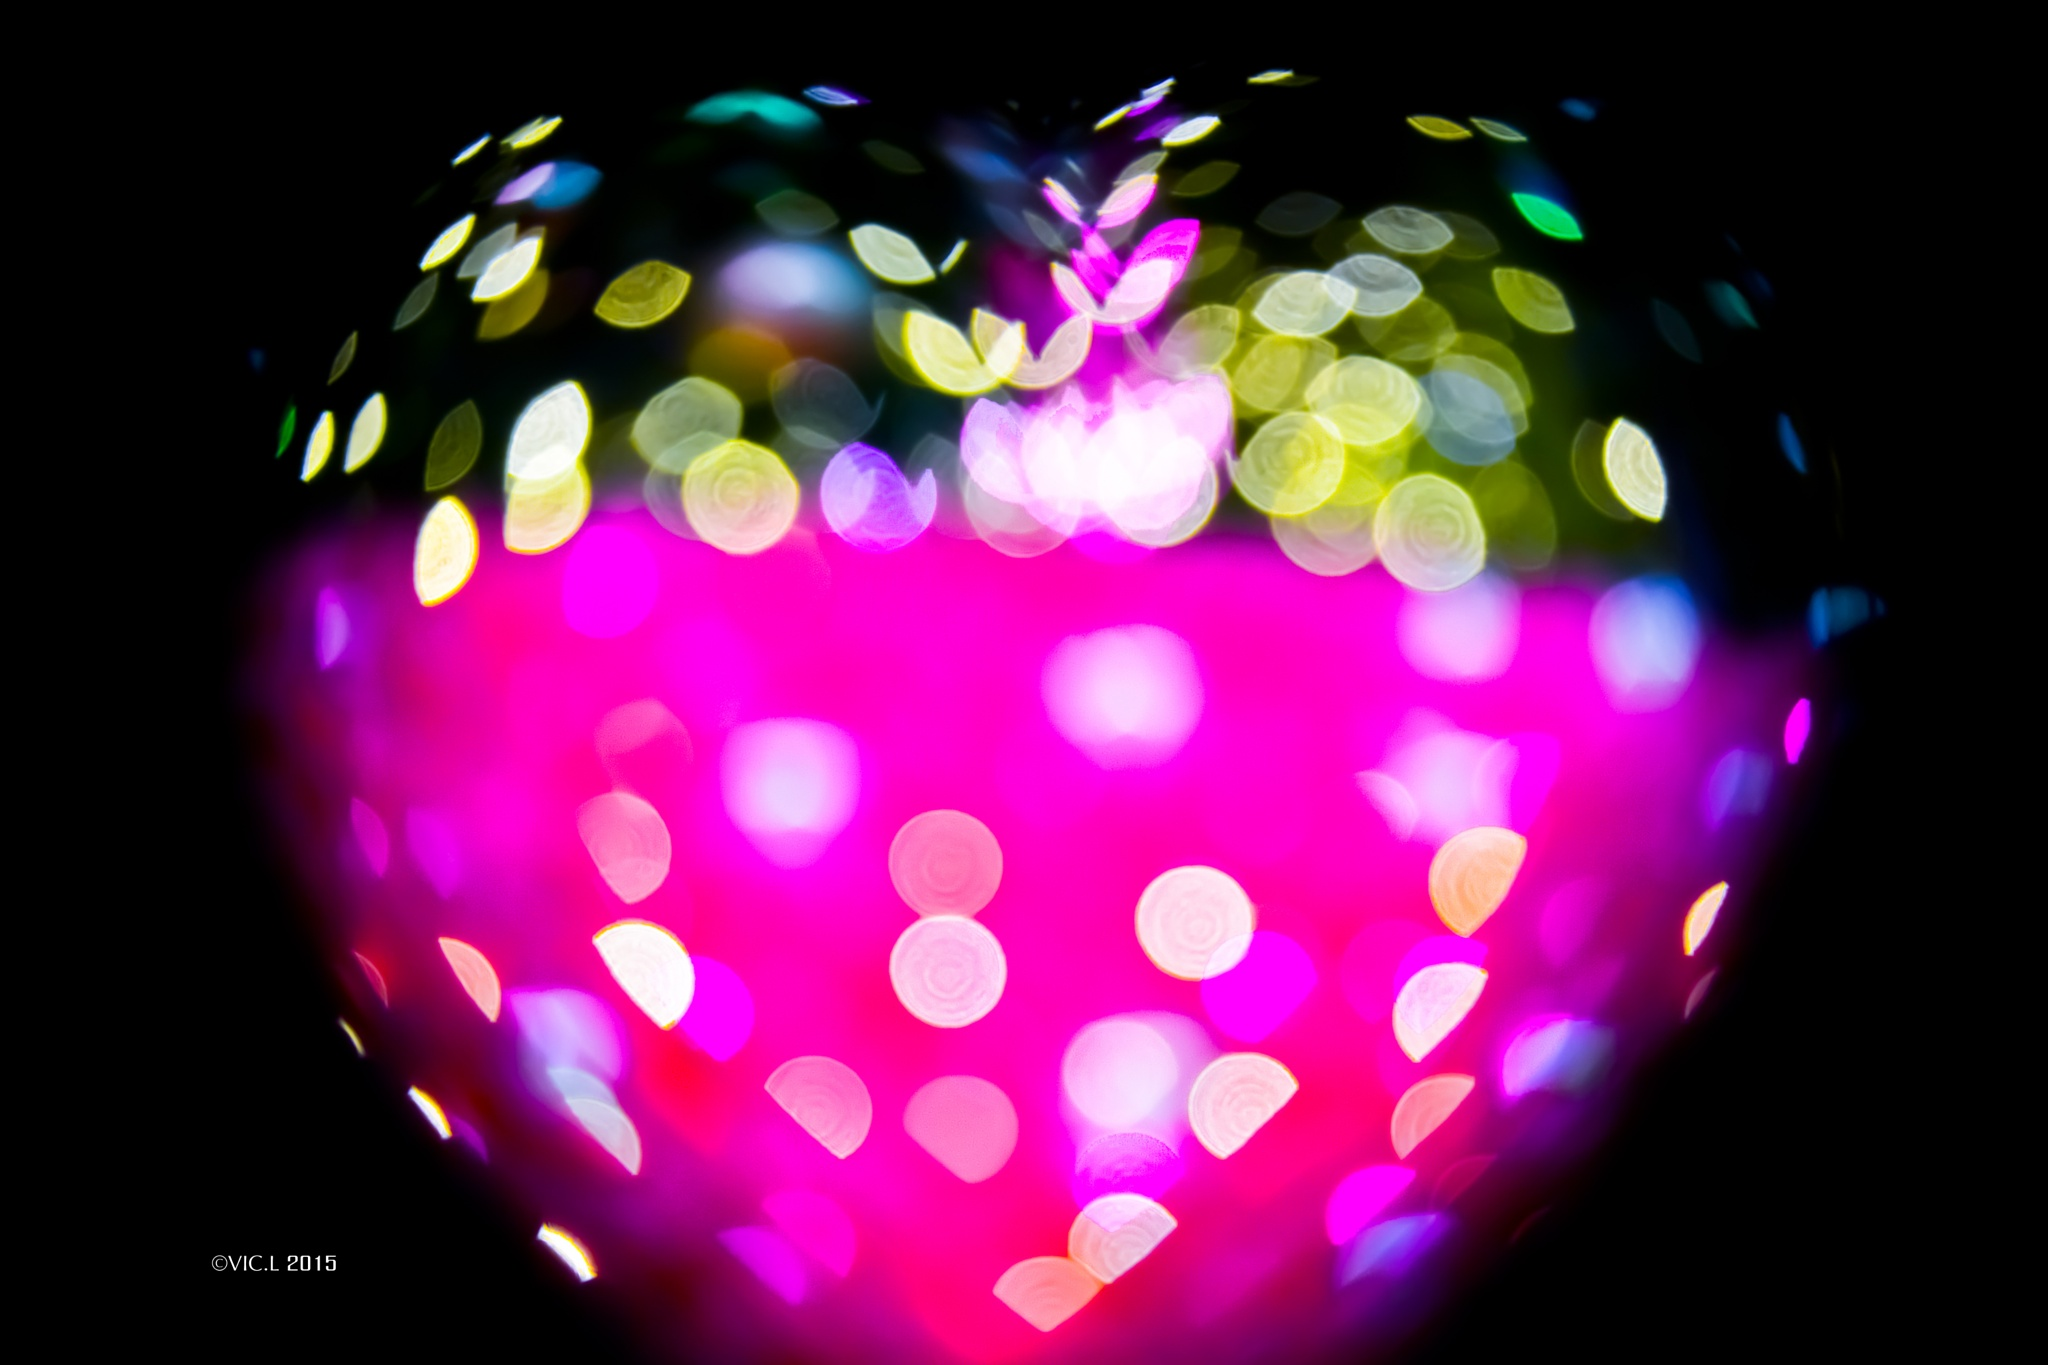 Colorful Heart by VIC.L